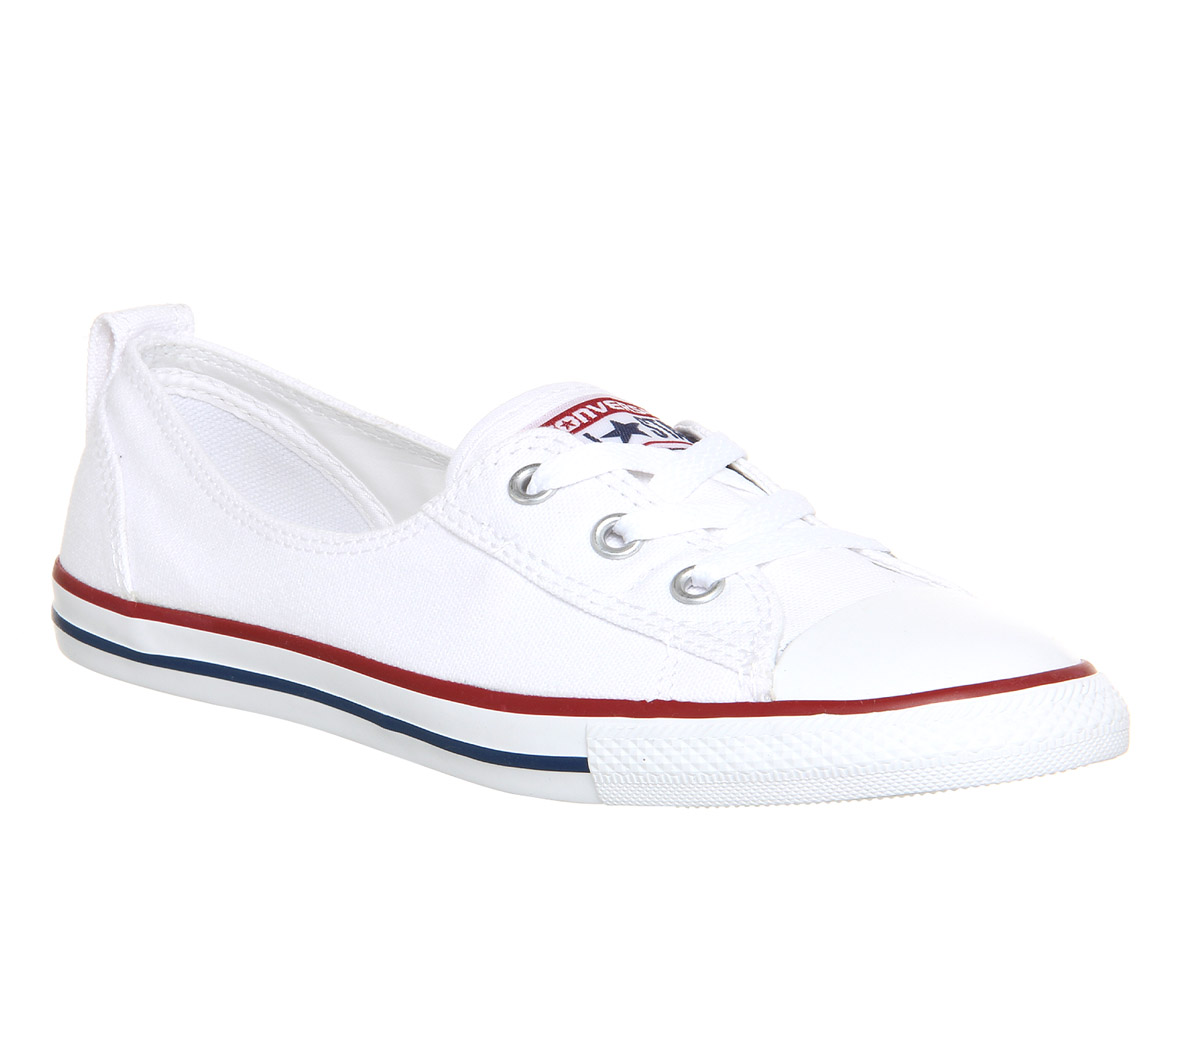 Sentinel Womens Converse White Textile Lace Up Trainers Size UK 4   Ex-Display 66c0eebf2243